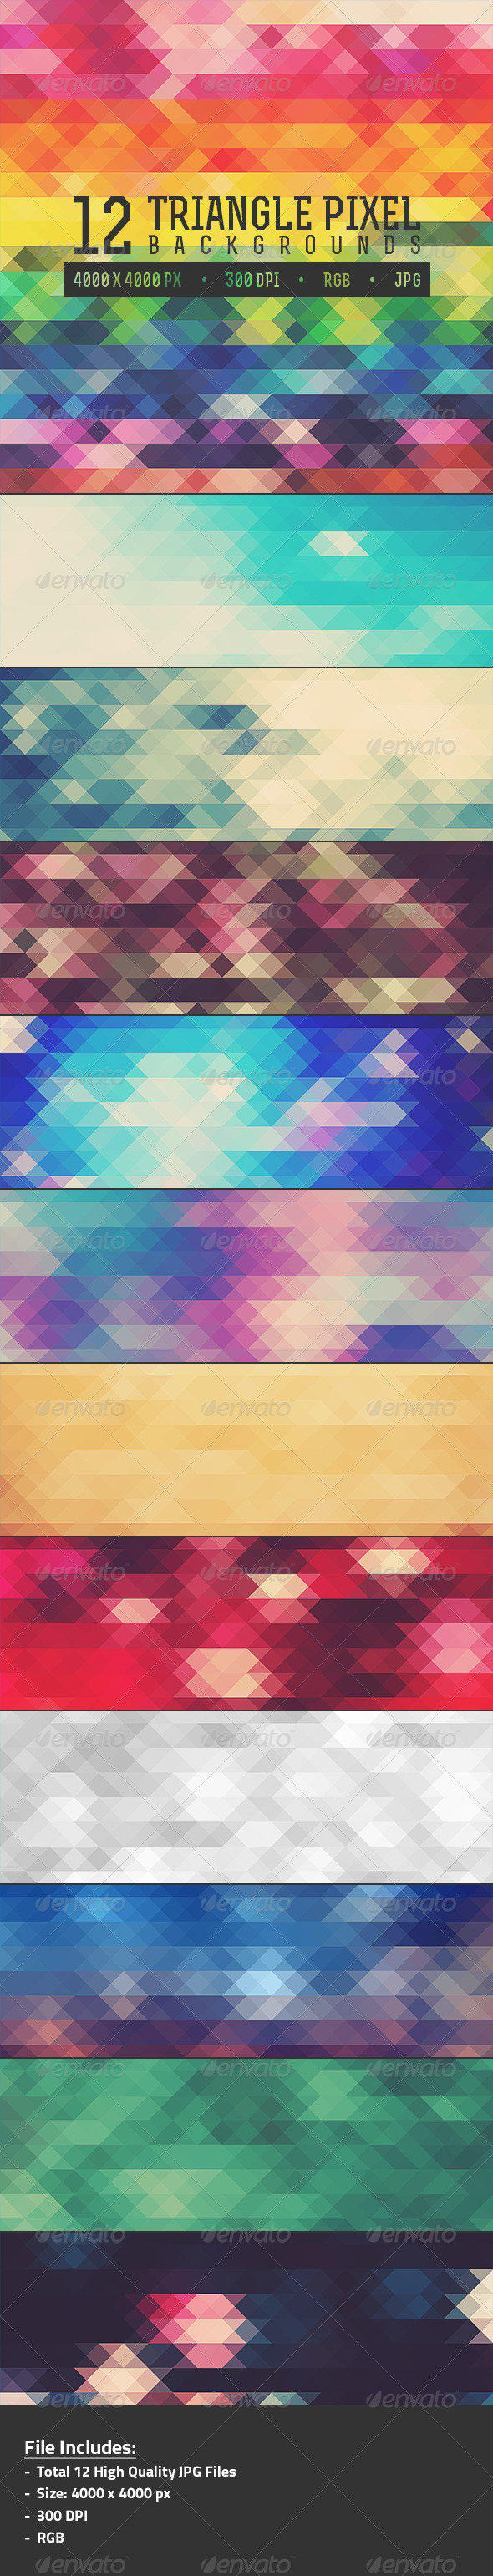 GraphicRiver 12 Triangle Pixel Backgrounds Pack 1 7982598